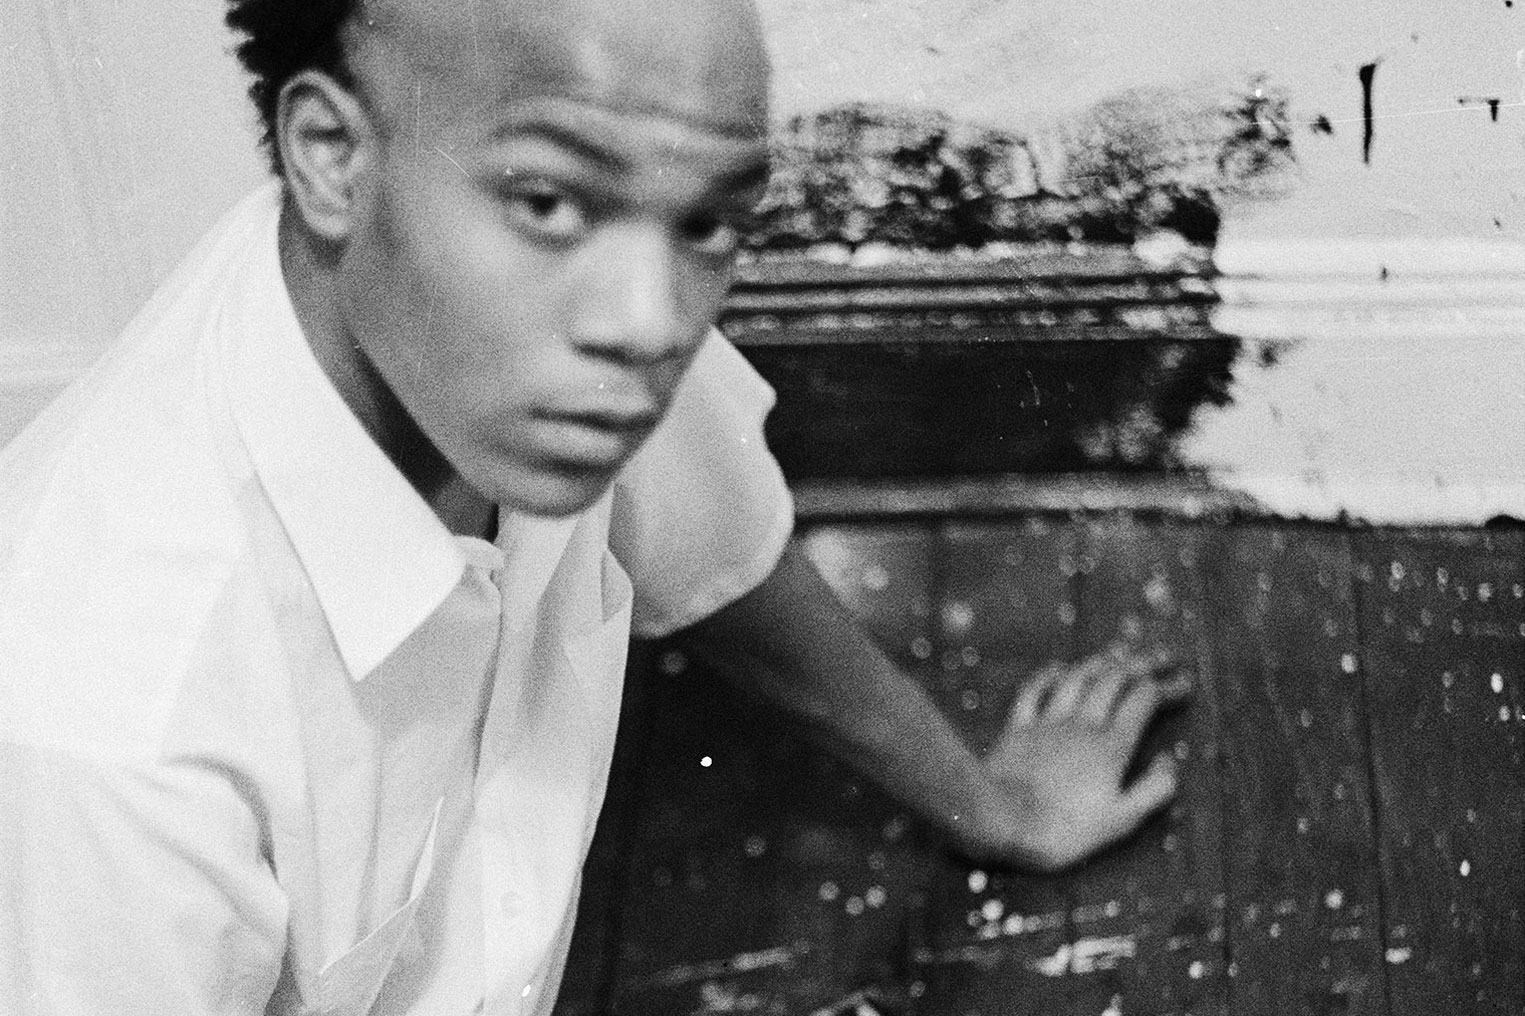 <p>Jean-Michel Basquiat painted on the floor, walls and doors of the New York City apartment he shared with Alexis Adler nearly 40 years ago.</p>